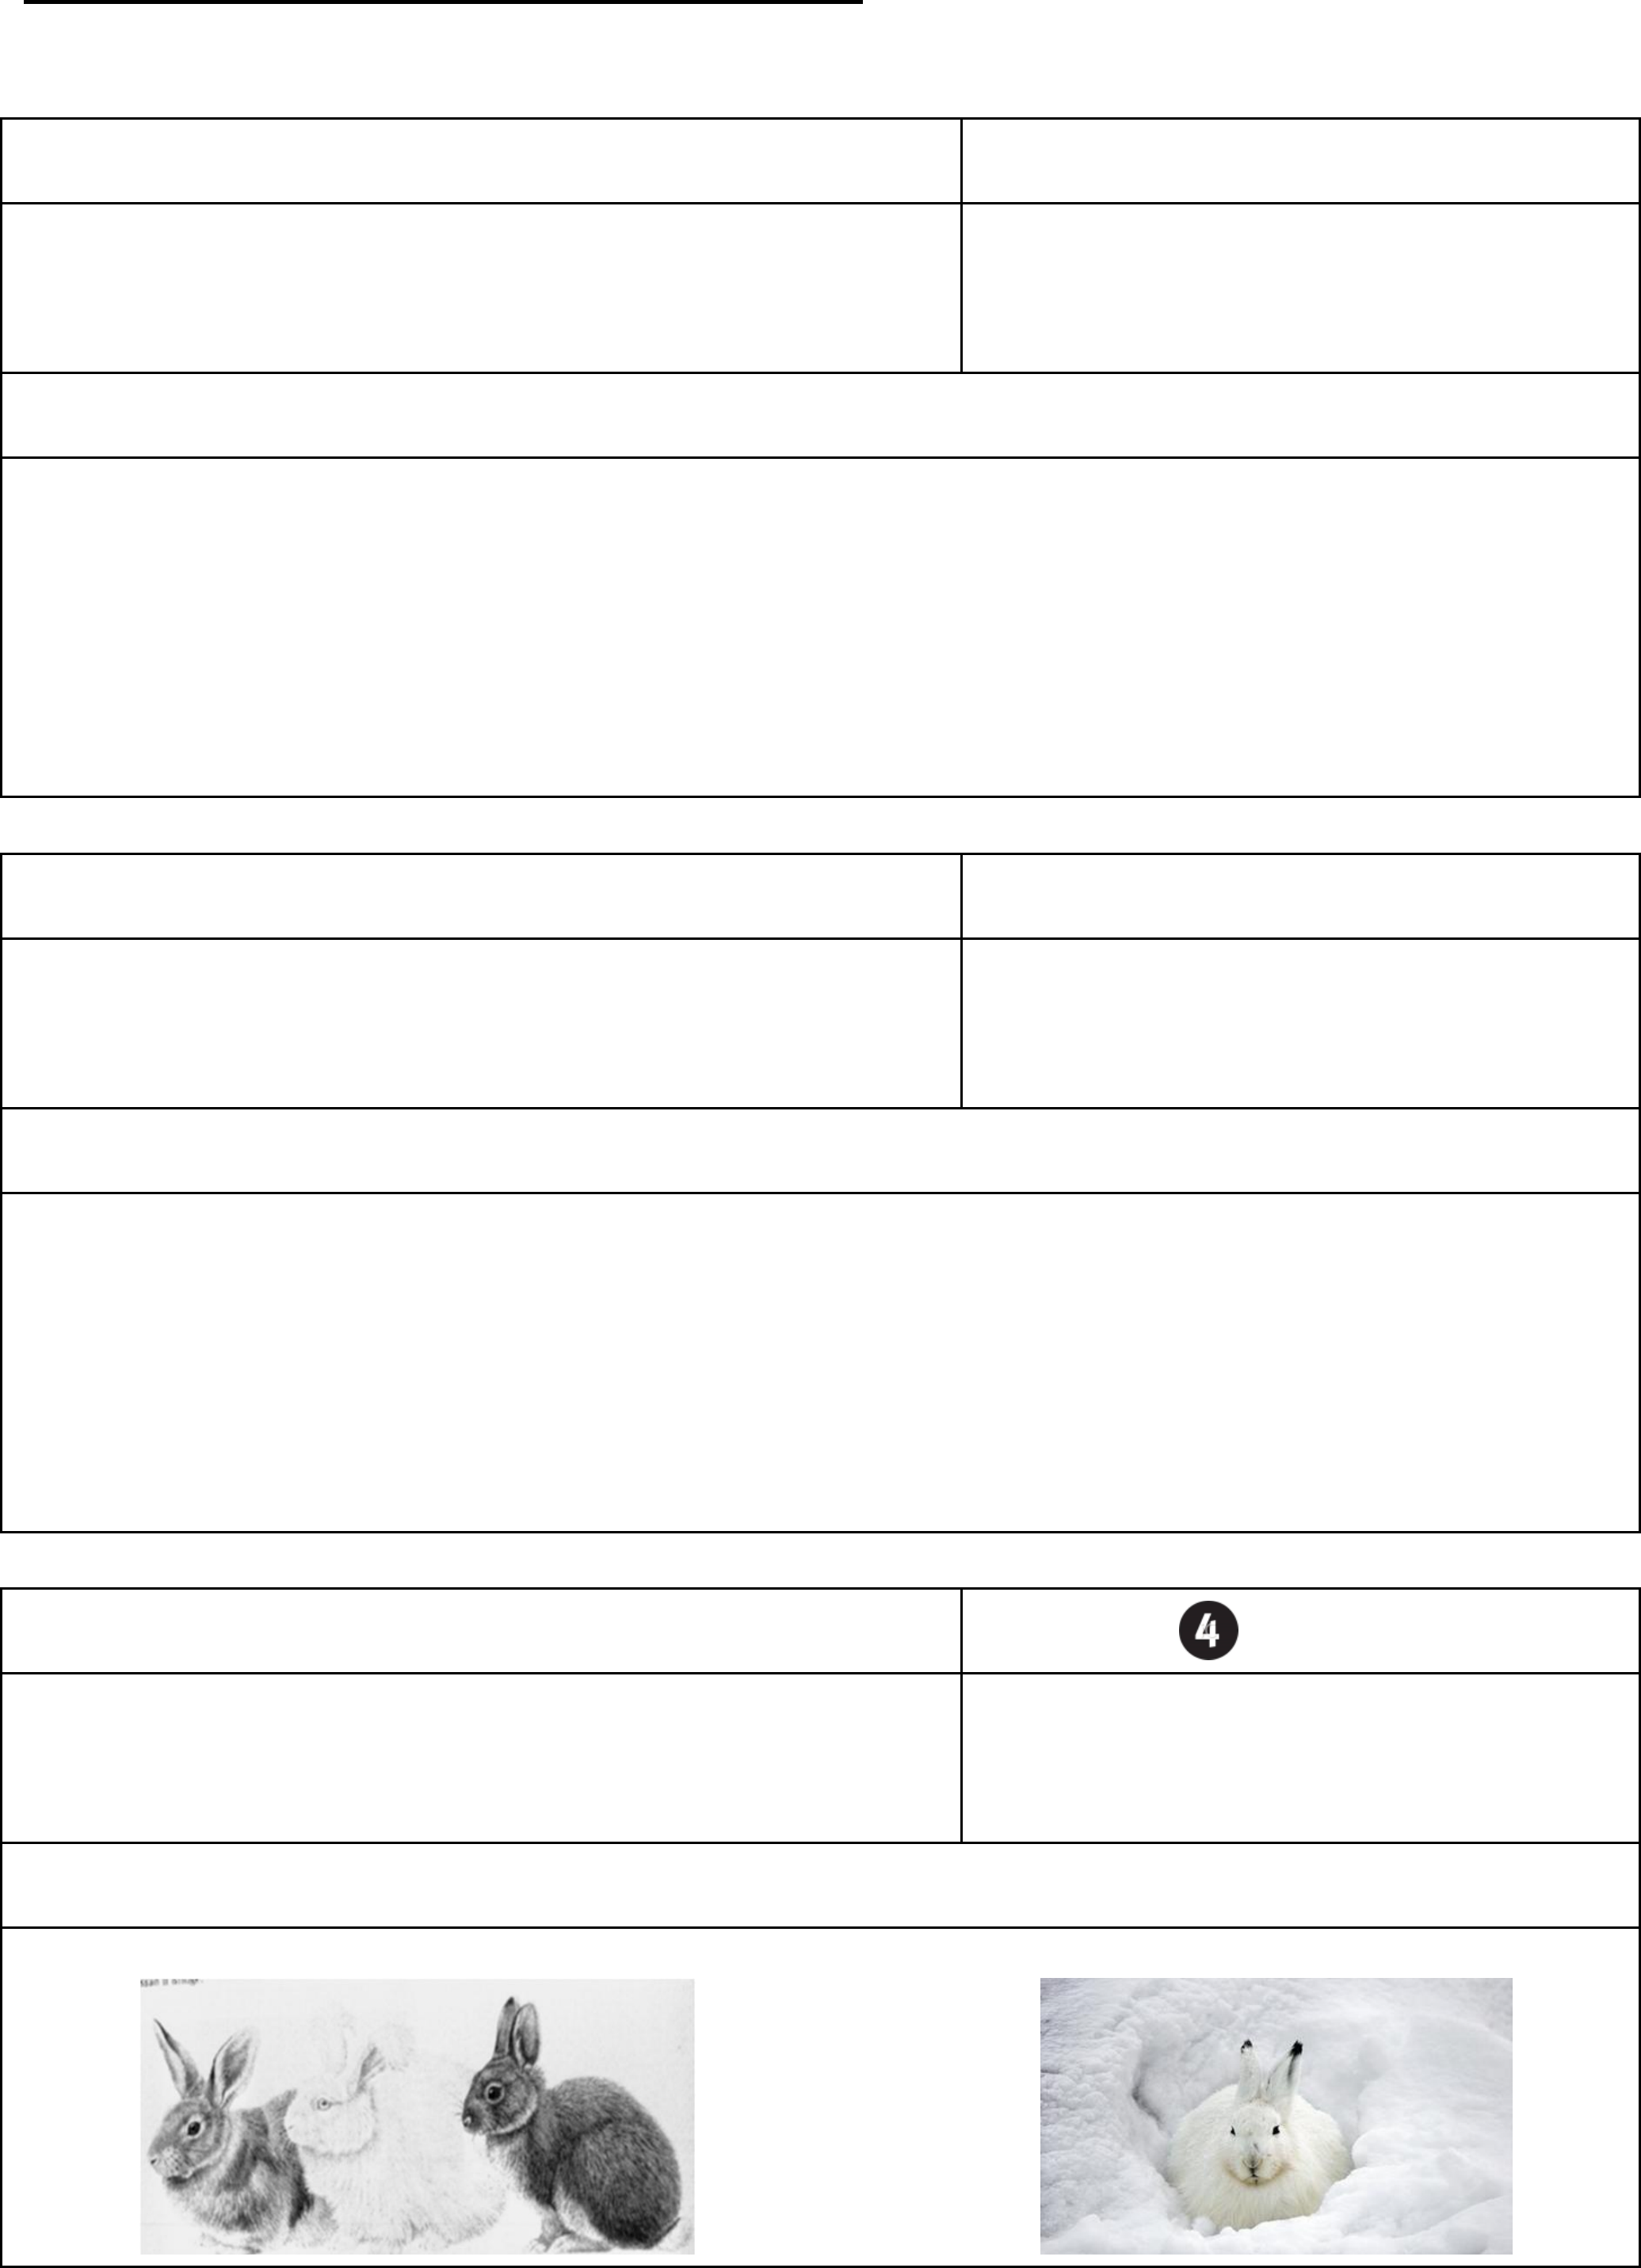 Science vocabulary index card template free download pronofoot35fo Choice Image